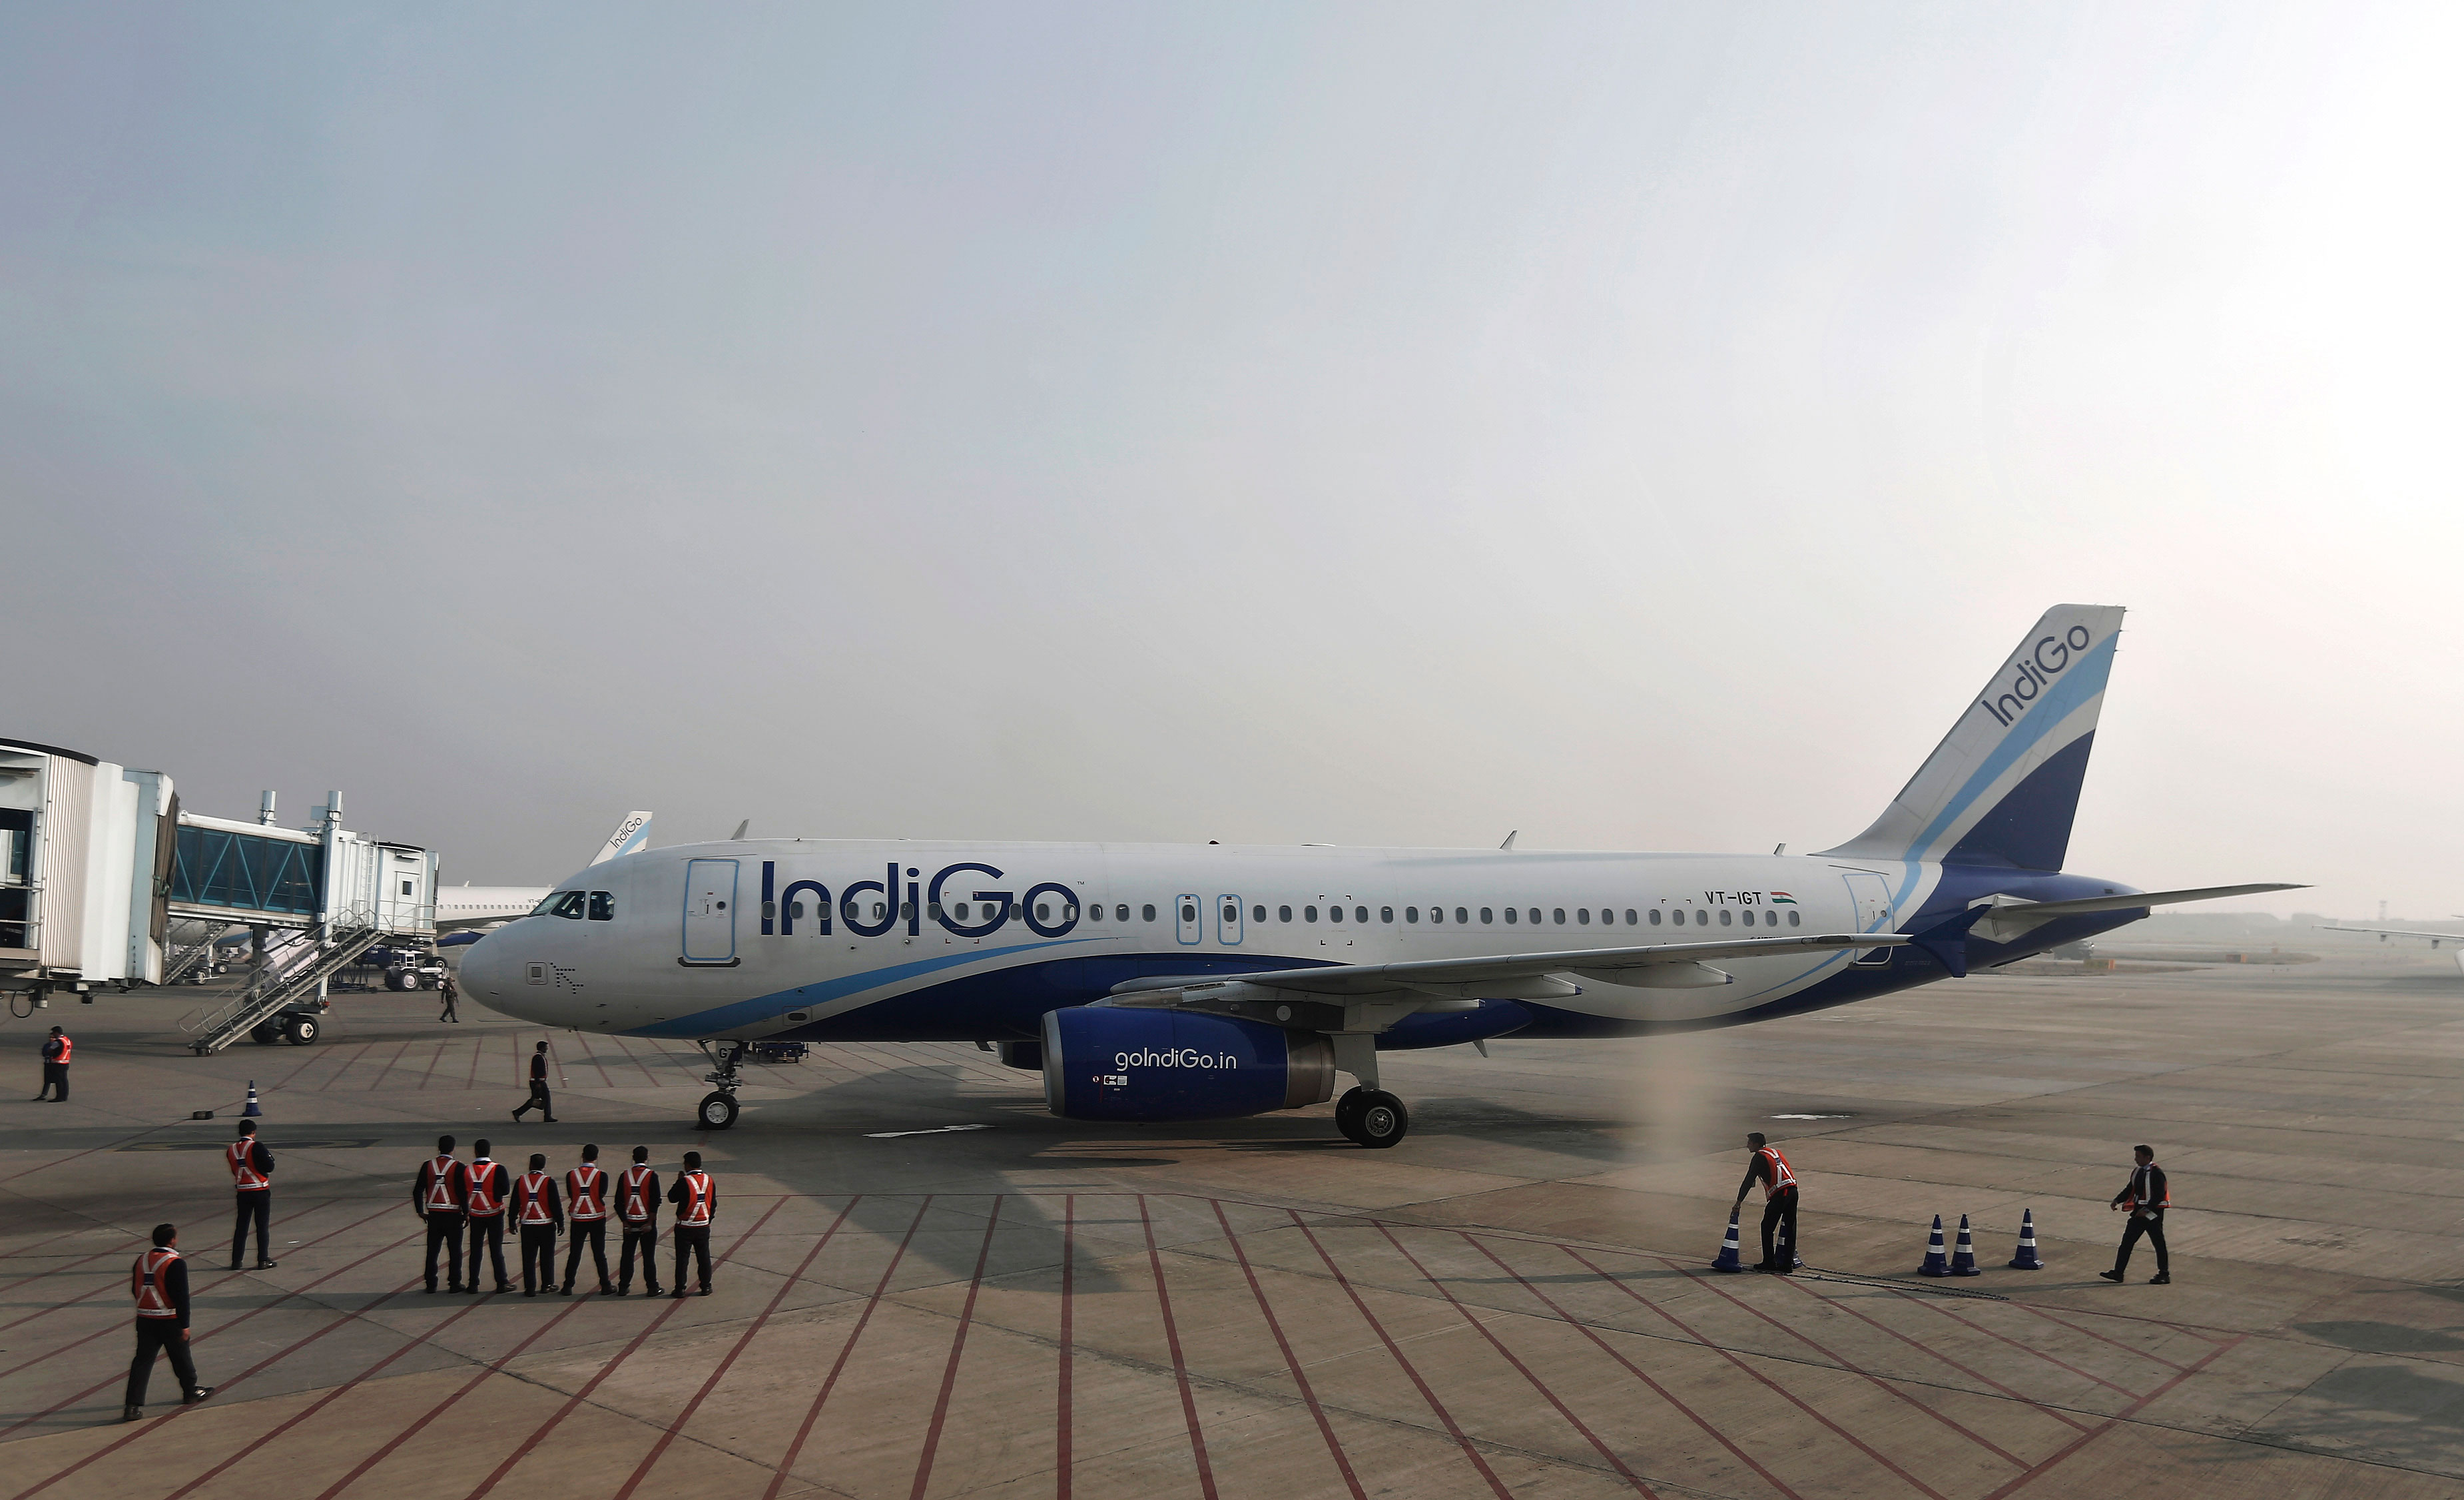 IndiGo to raise $200M in IPO; promoters, others offer to sell shares too